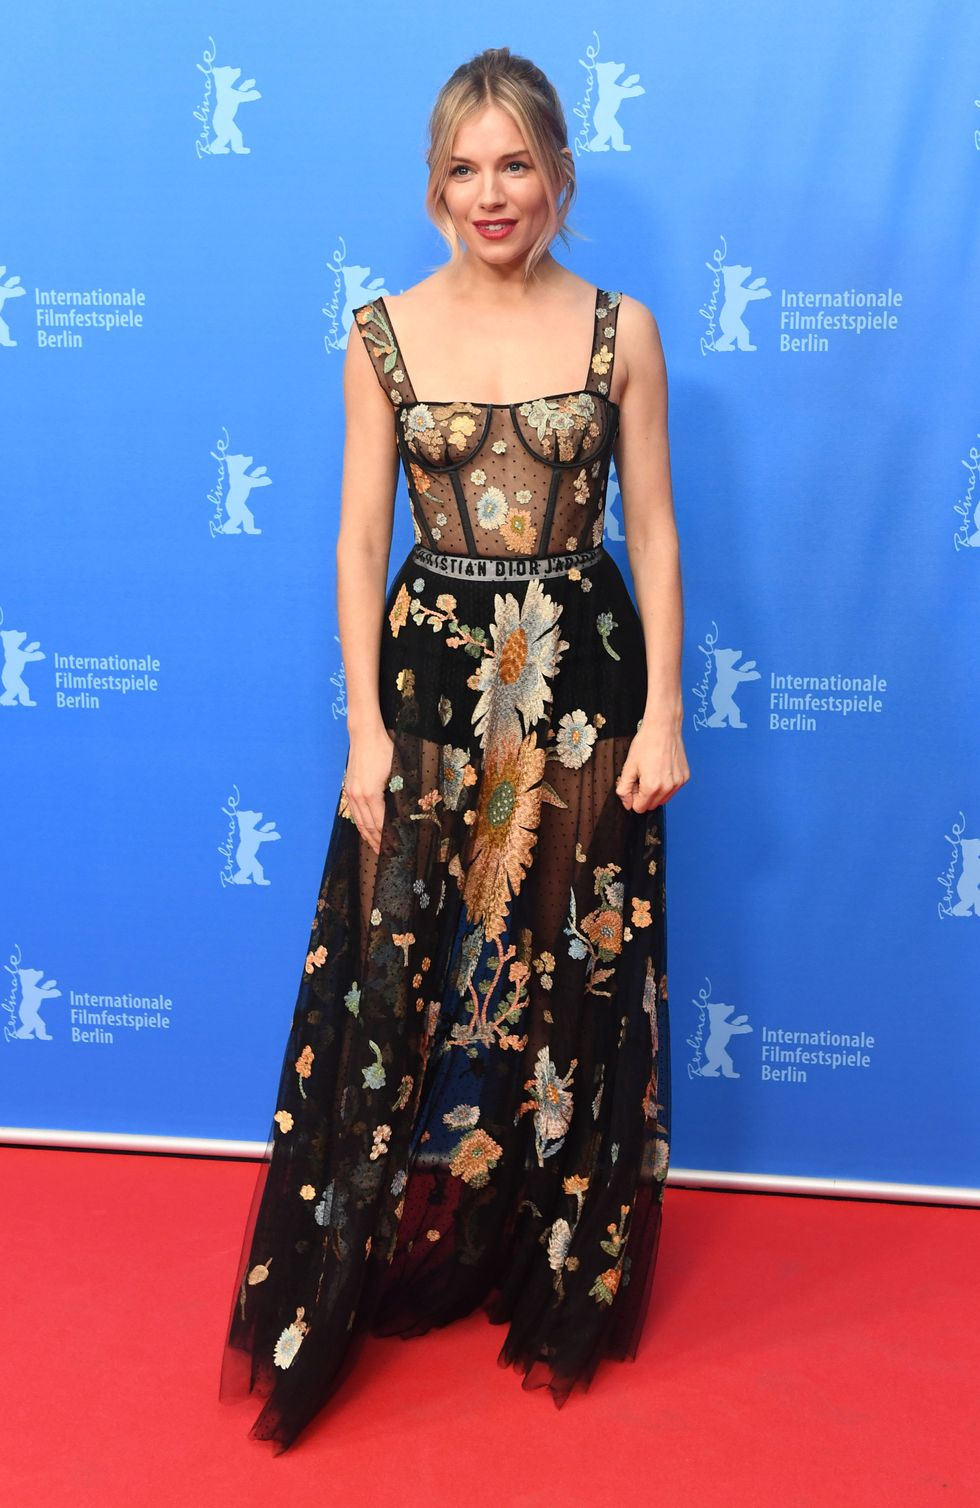 Actress photographed in a Dior dress on the red carpet